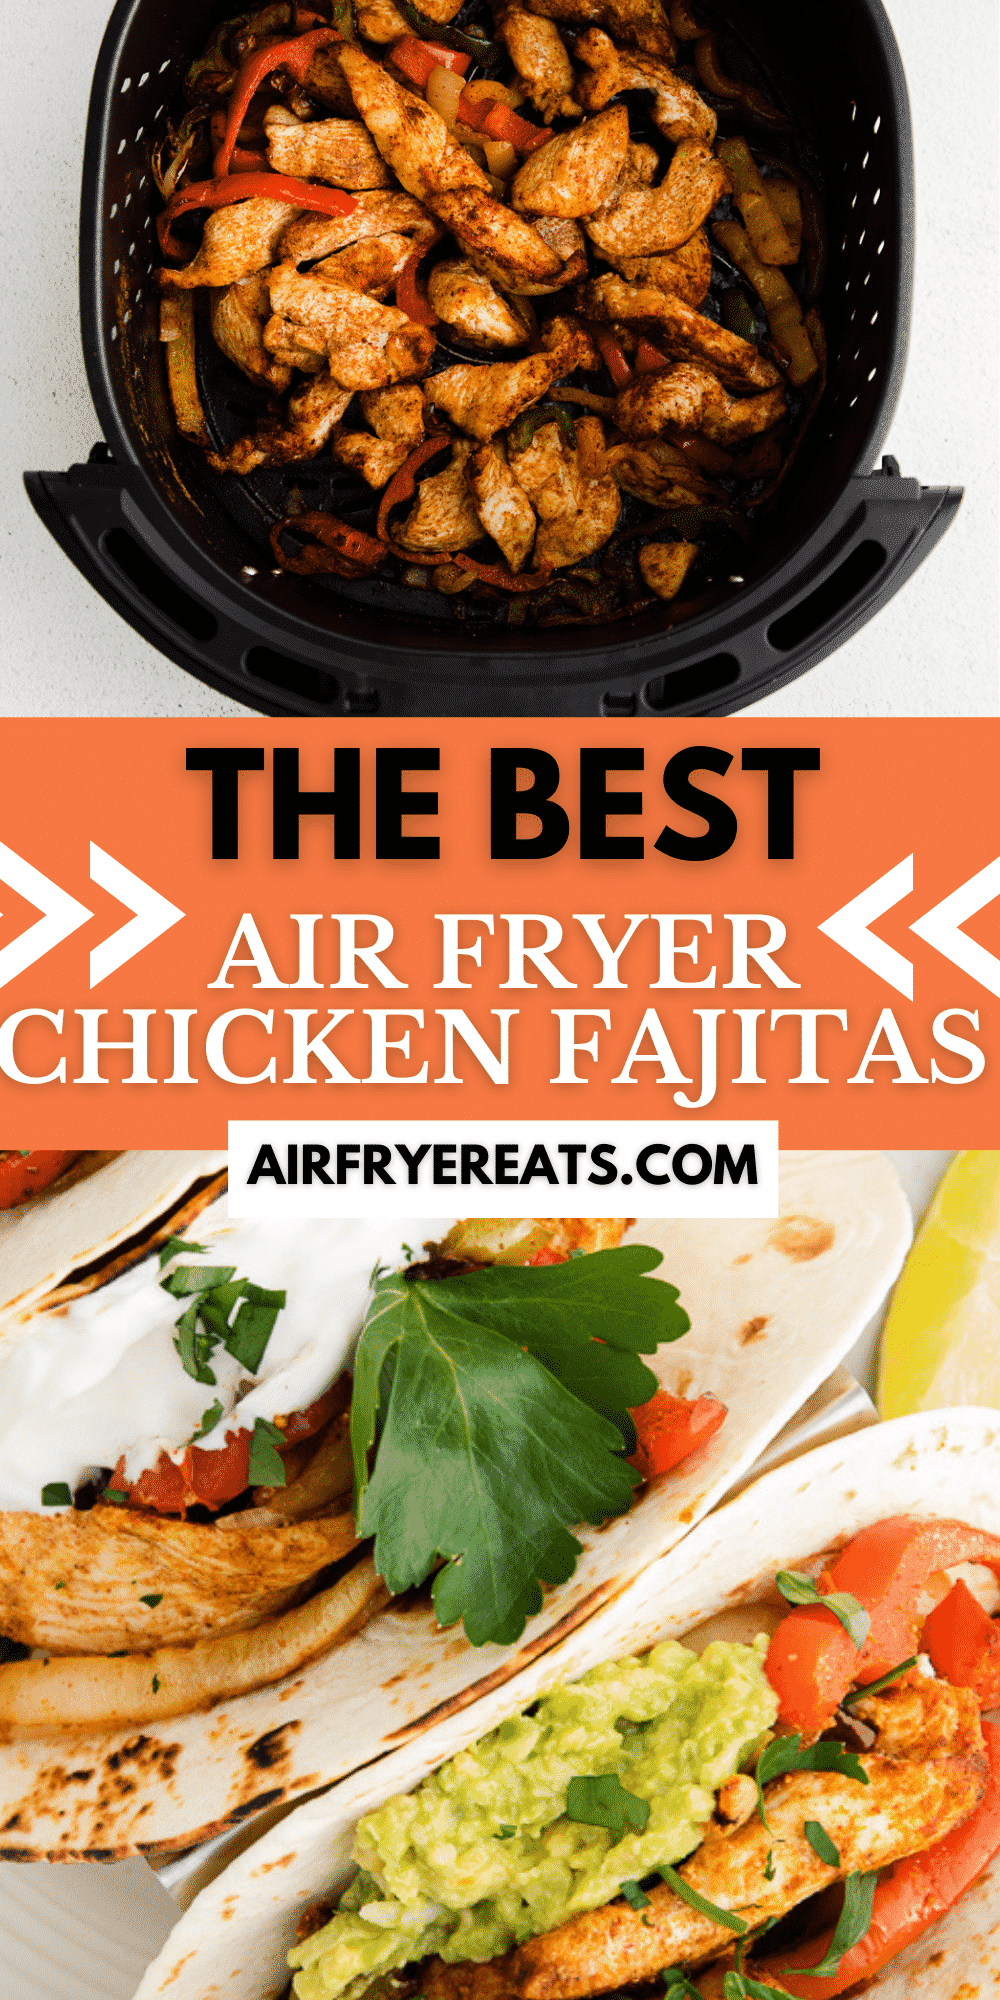 Air Fryer Chicken Fajitas are a deliciously seasoned mix of boneless chicken breast strips, peppers and onions that cook up quickly and easily, ready to fill warm tortillas for dinner. #airfryer #fajitas via @vegetarianmamma